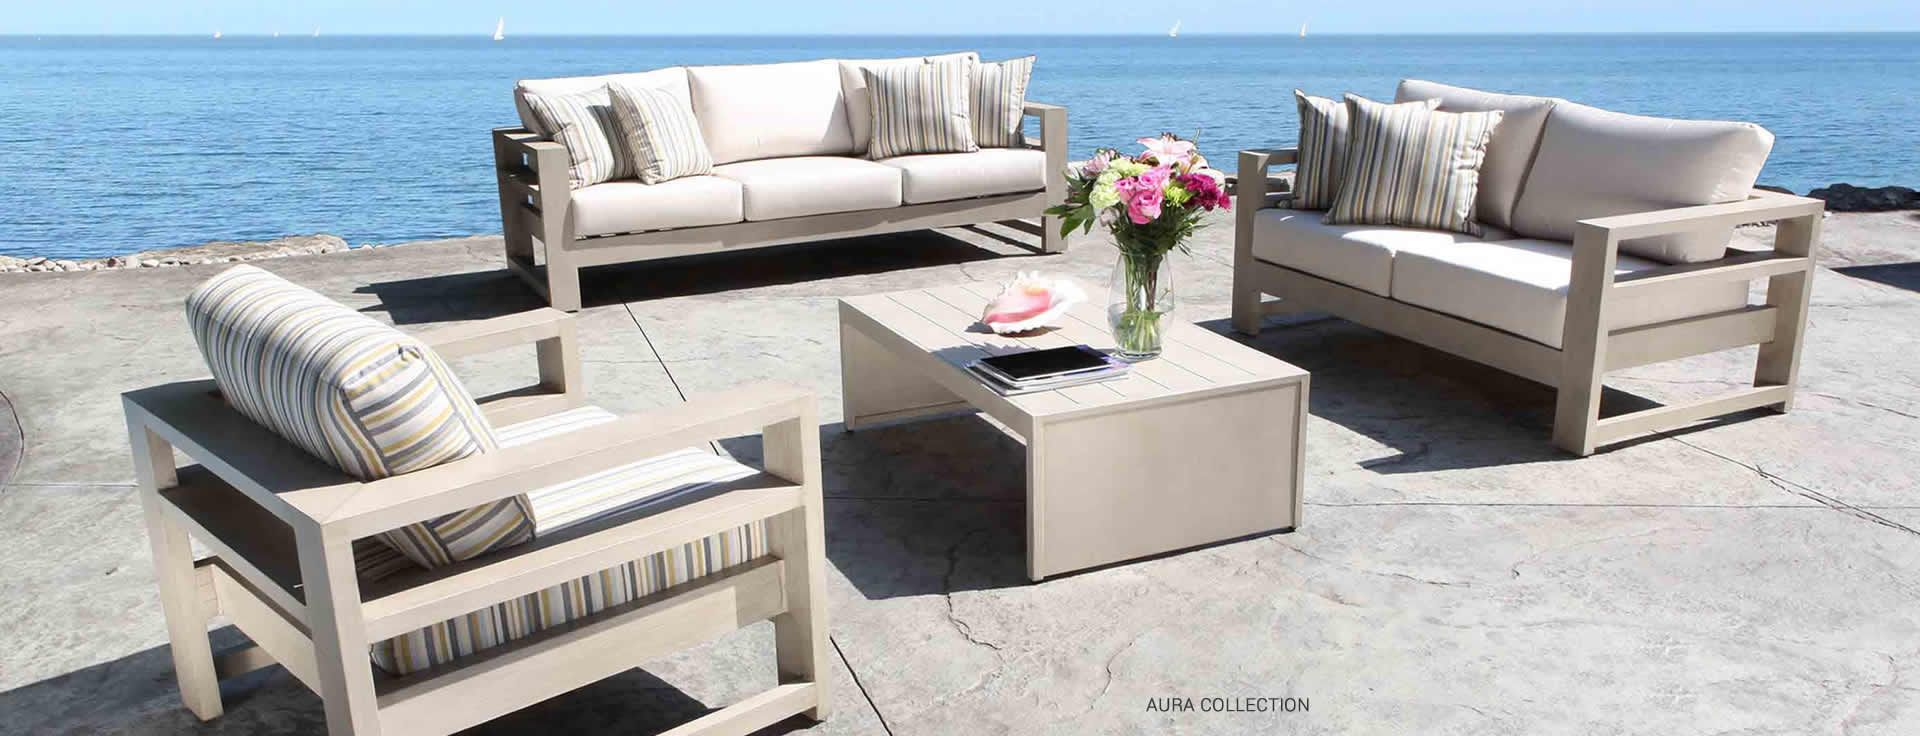 Aura Collection - Cabana Coast